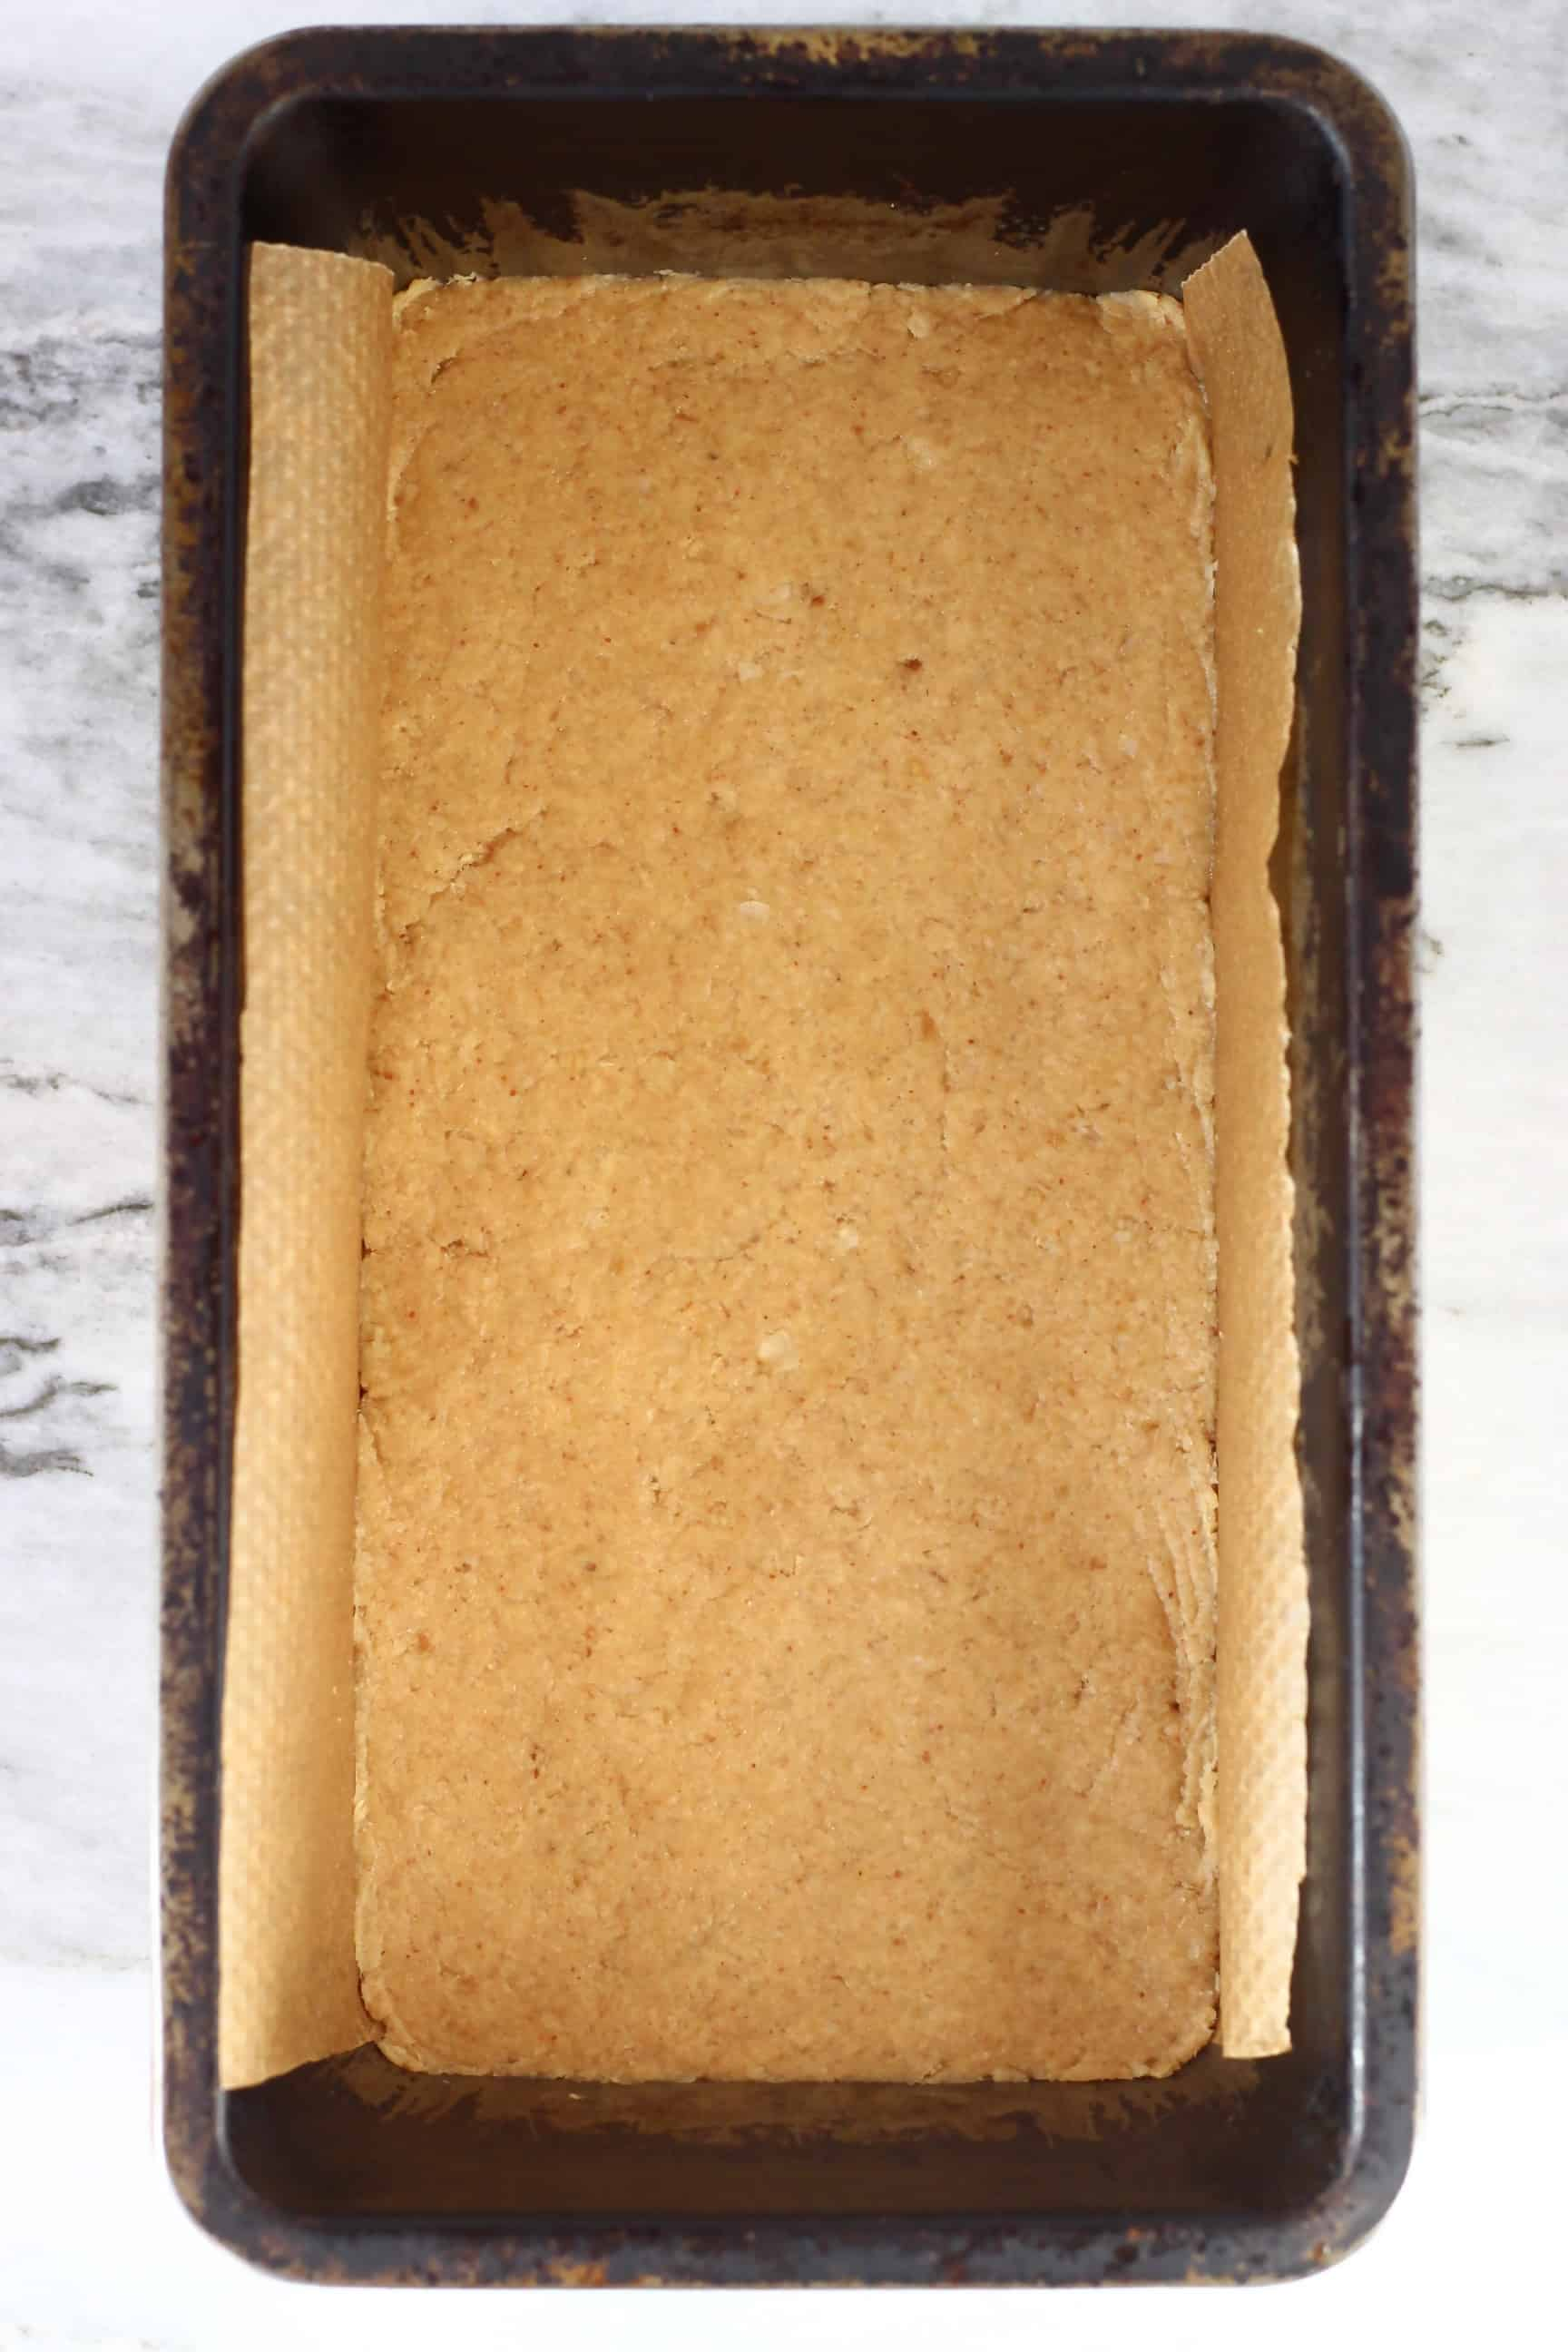 Peanut butter bar mixture in a loaf tin lined with baking paper